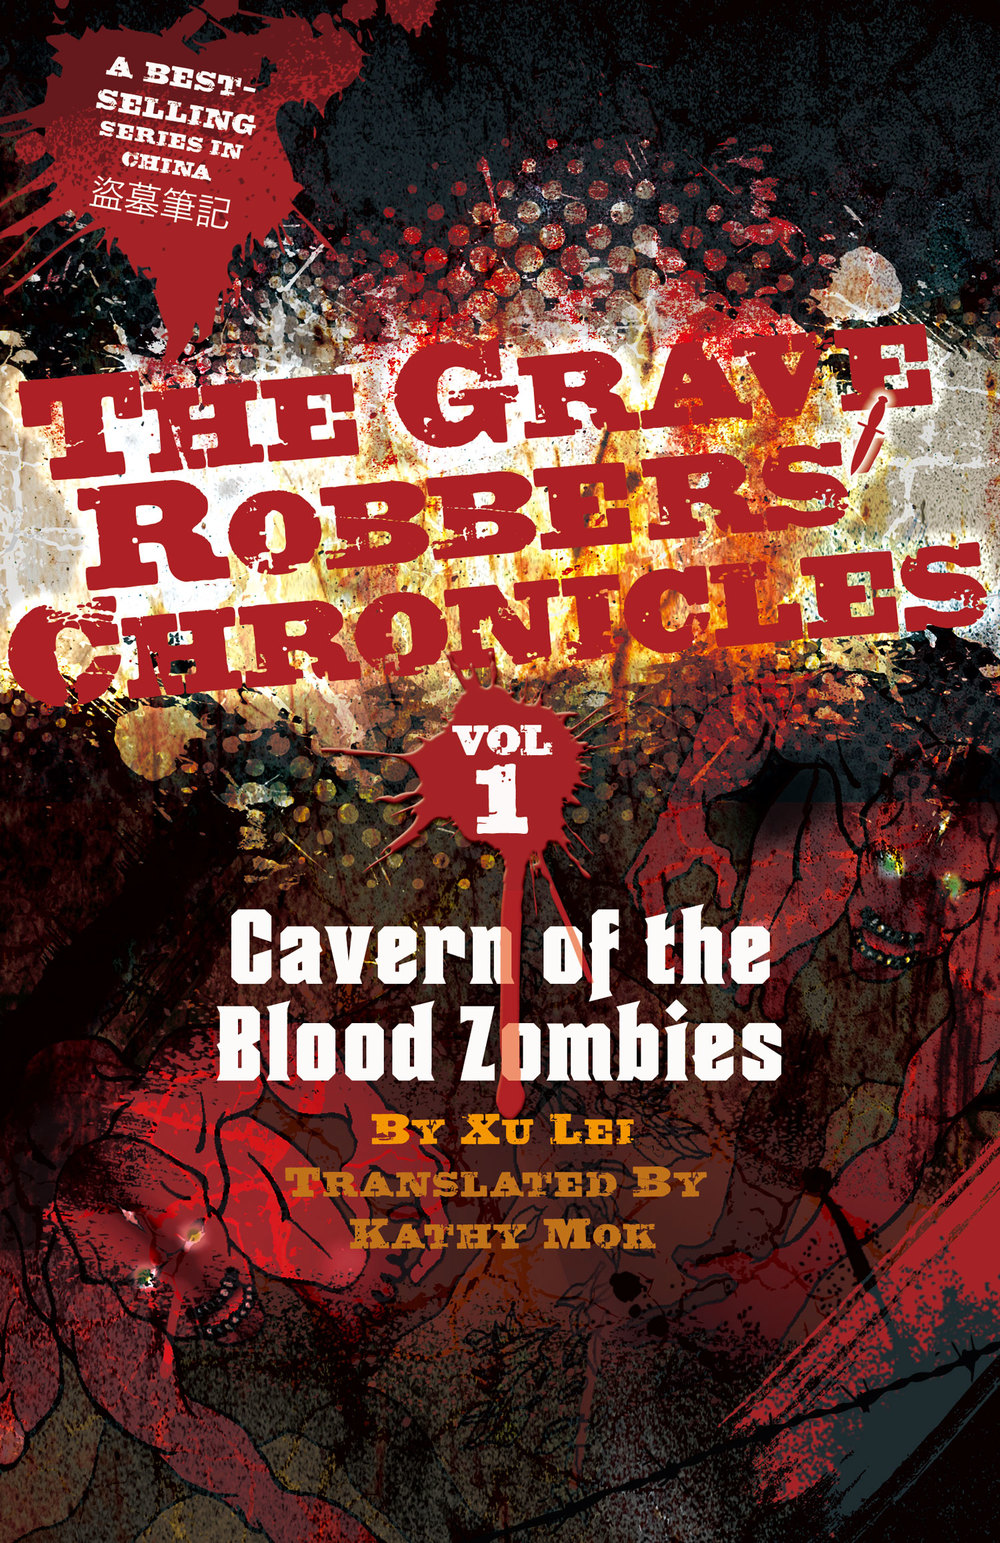 Vol. 1: Cavern of the Blood Zombies